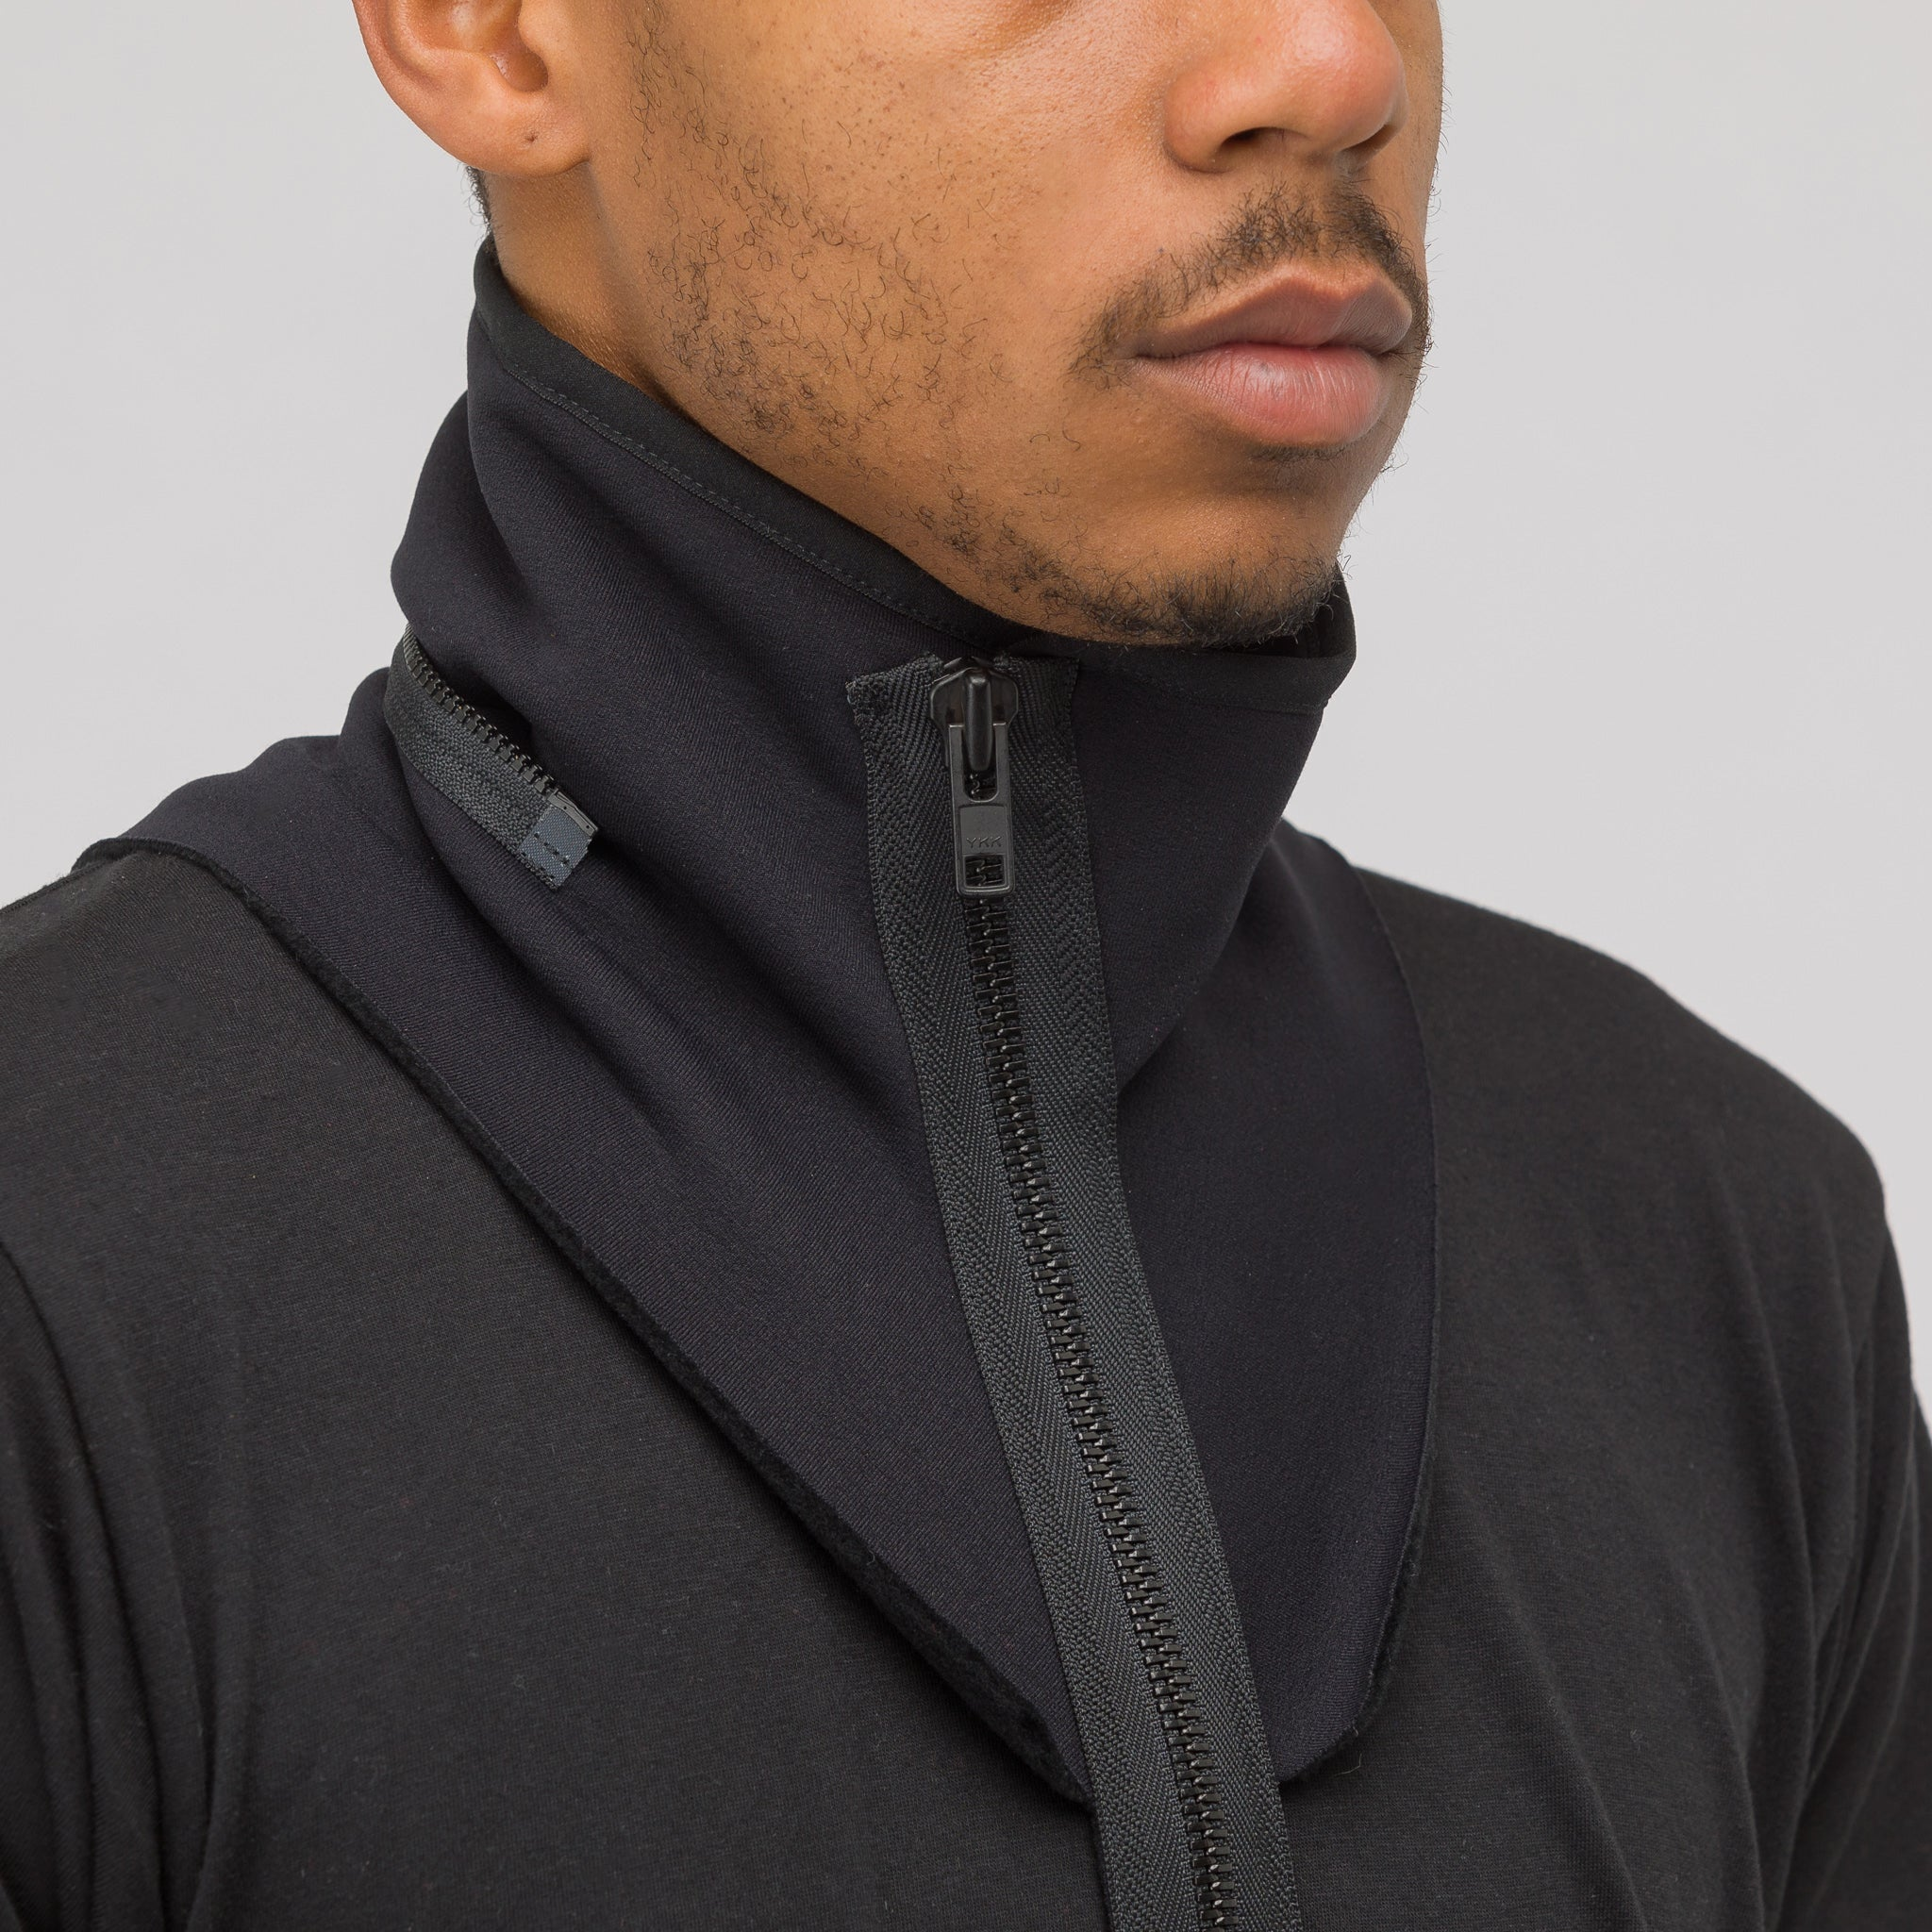 NG9-PS Modular Zippered Power Stretch Collar in Black